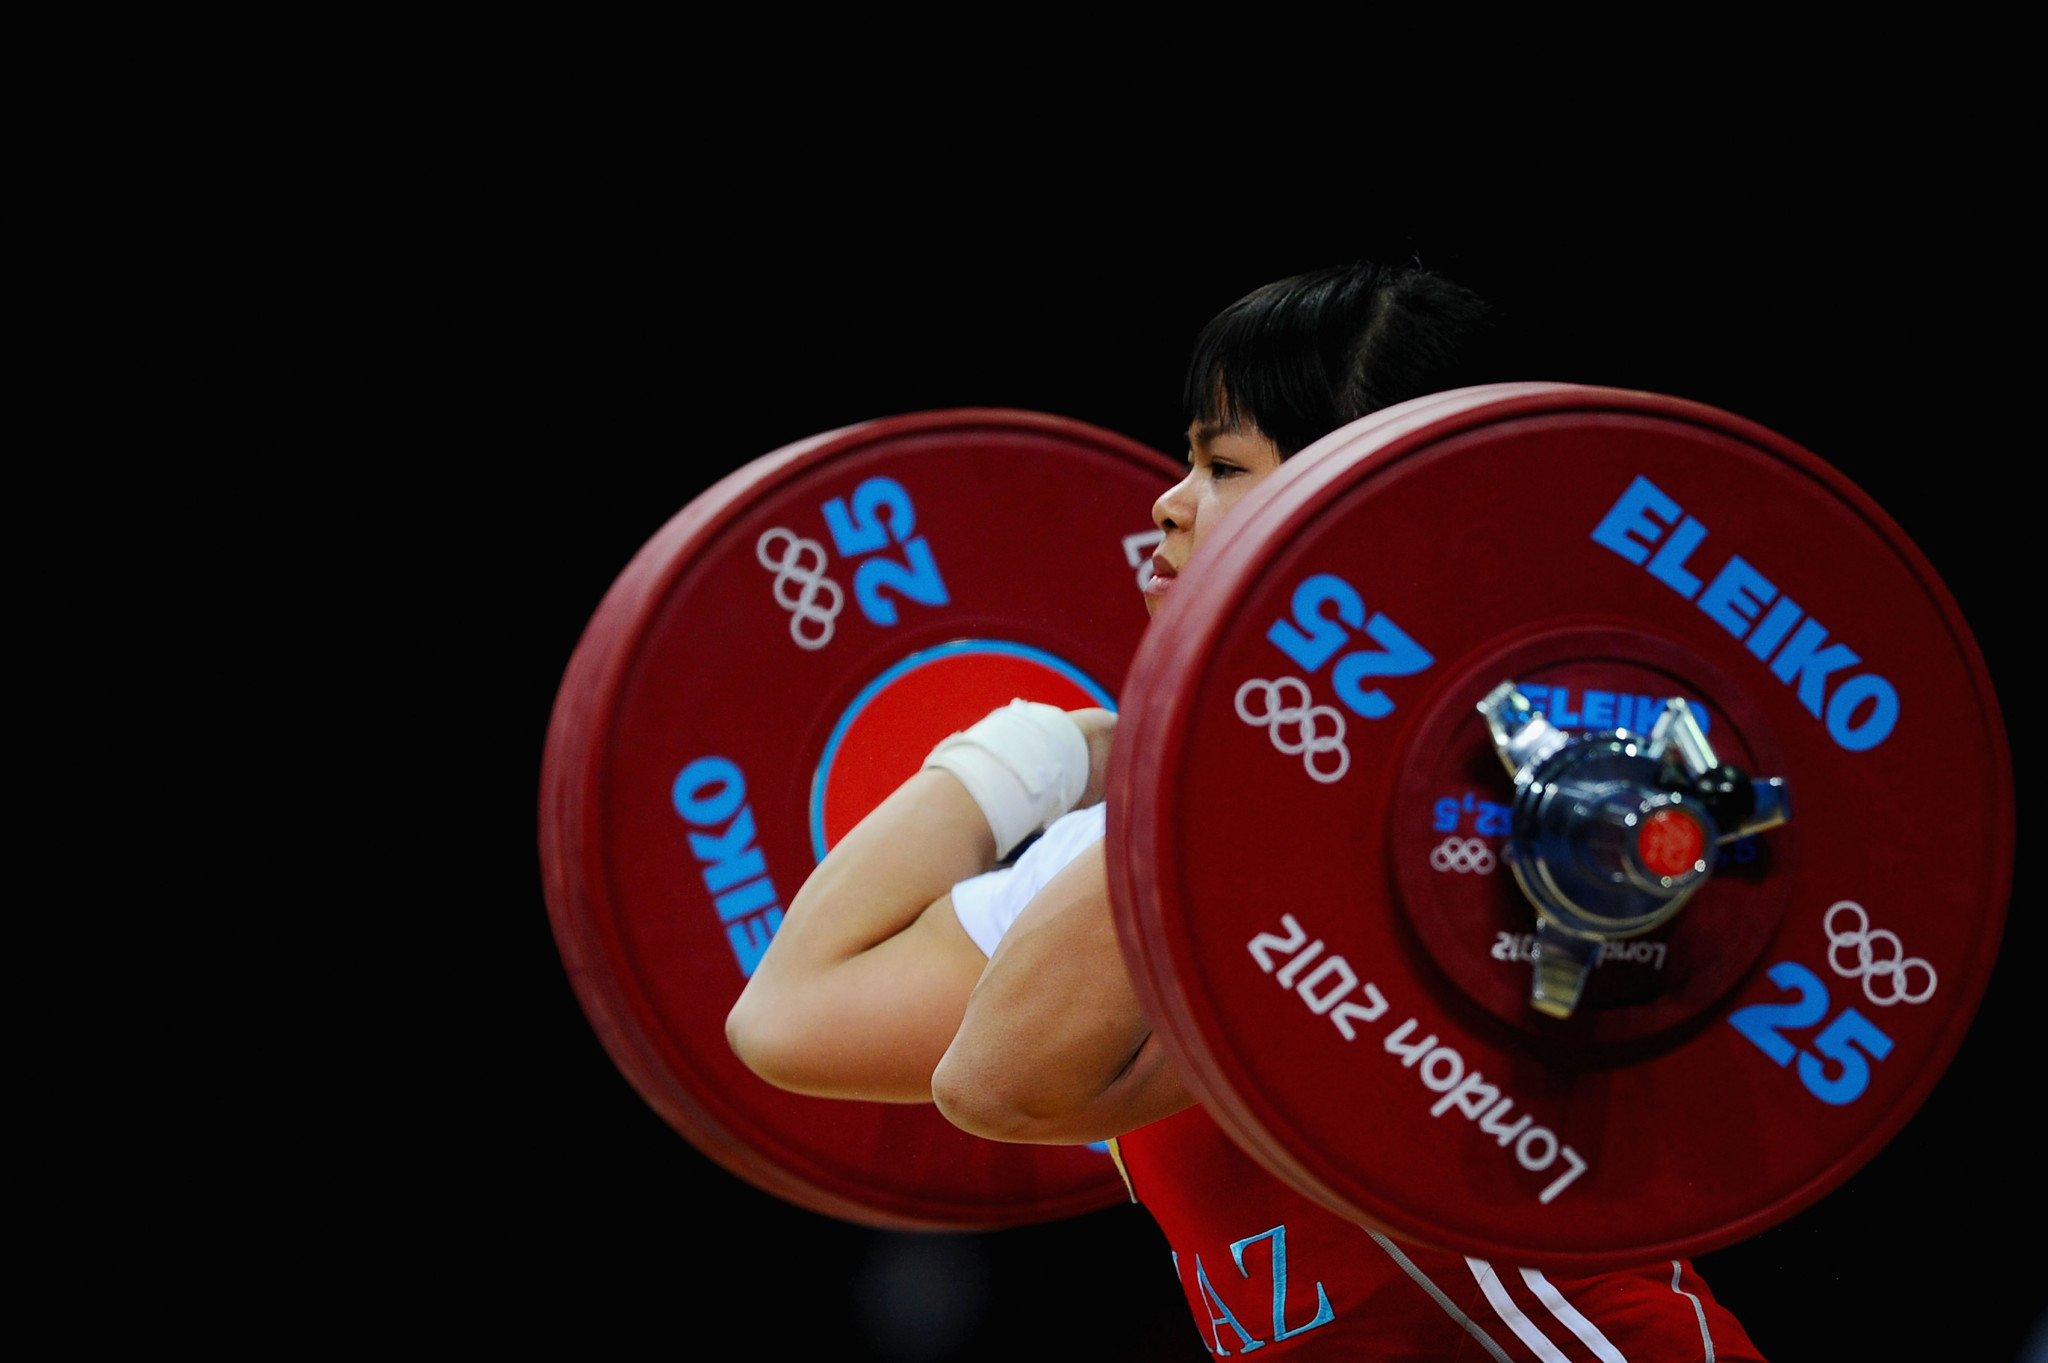 Kazakhstan's Zulfiya Chinshanlo is among several weightlifters stripped of medals after retests after London 2012 ©Getty Images